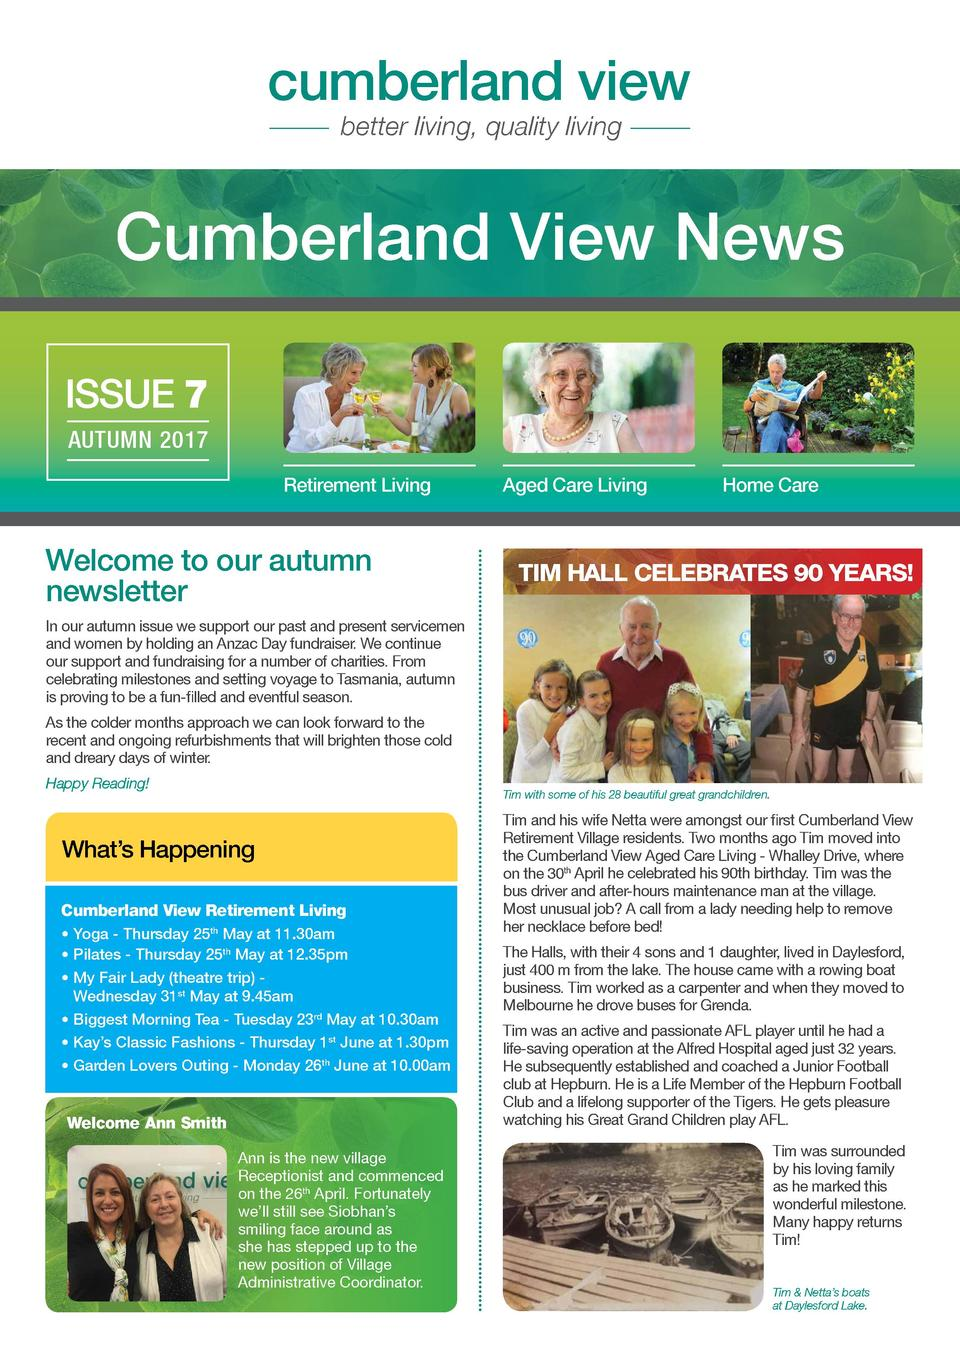 cumberland view better living, quality living  Cumberland View News ISSUE 7 AUTUMN 2017 Retirement Living  Welcome to our ...